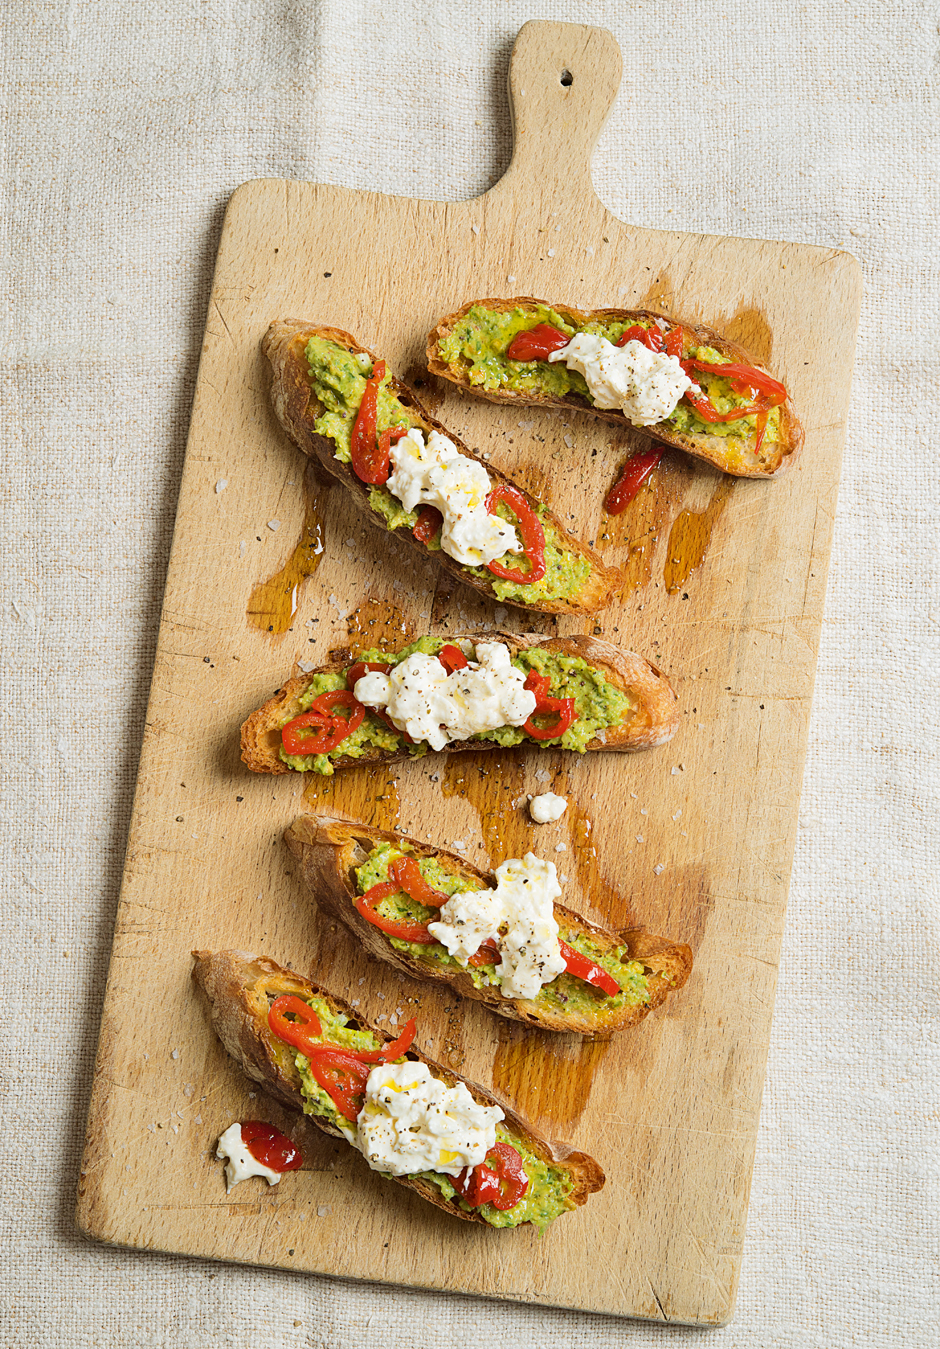 Ramp Pesto with Burrata and Peppadews